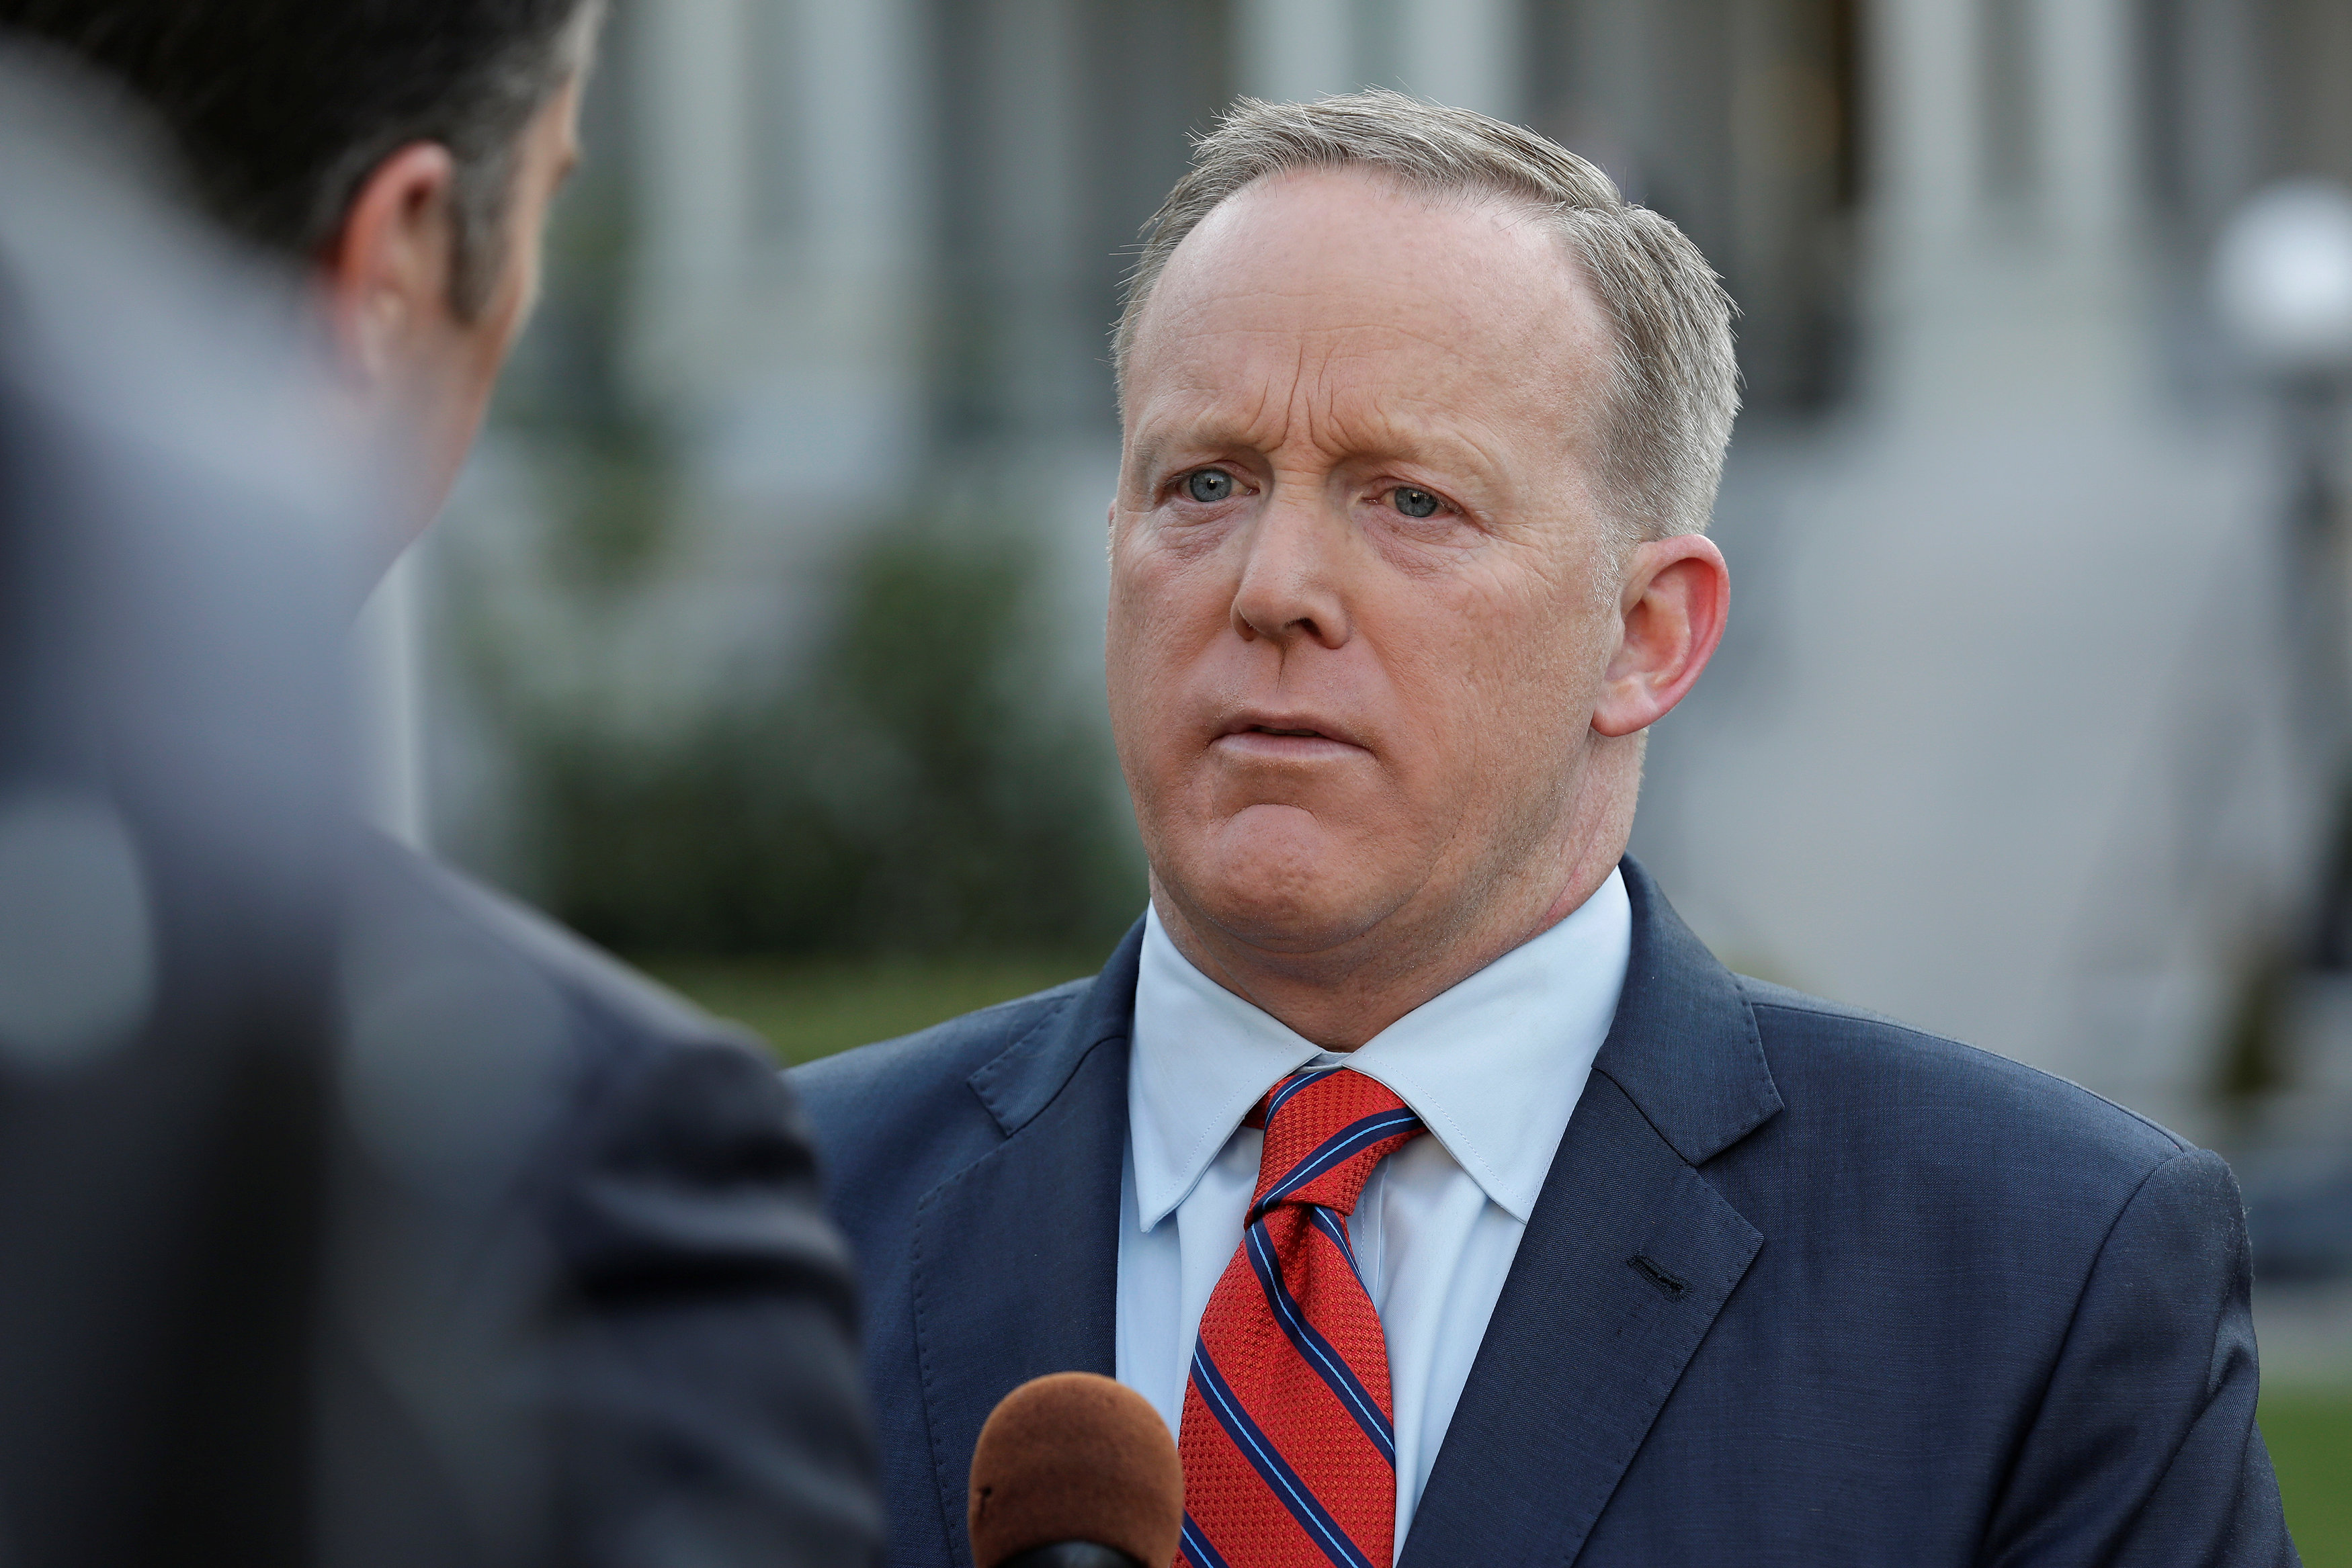 White House Press Secretary Sean Spicer apologizes during an interview for saying Adolf Hitler did not use chemical weapons, at the White House in Washington,